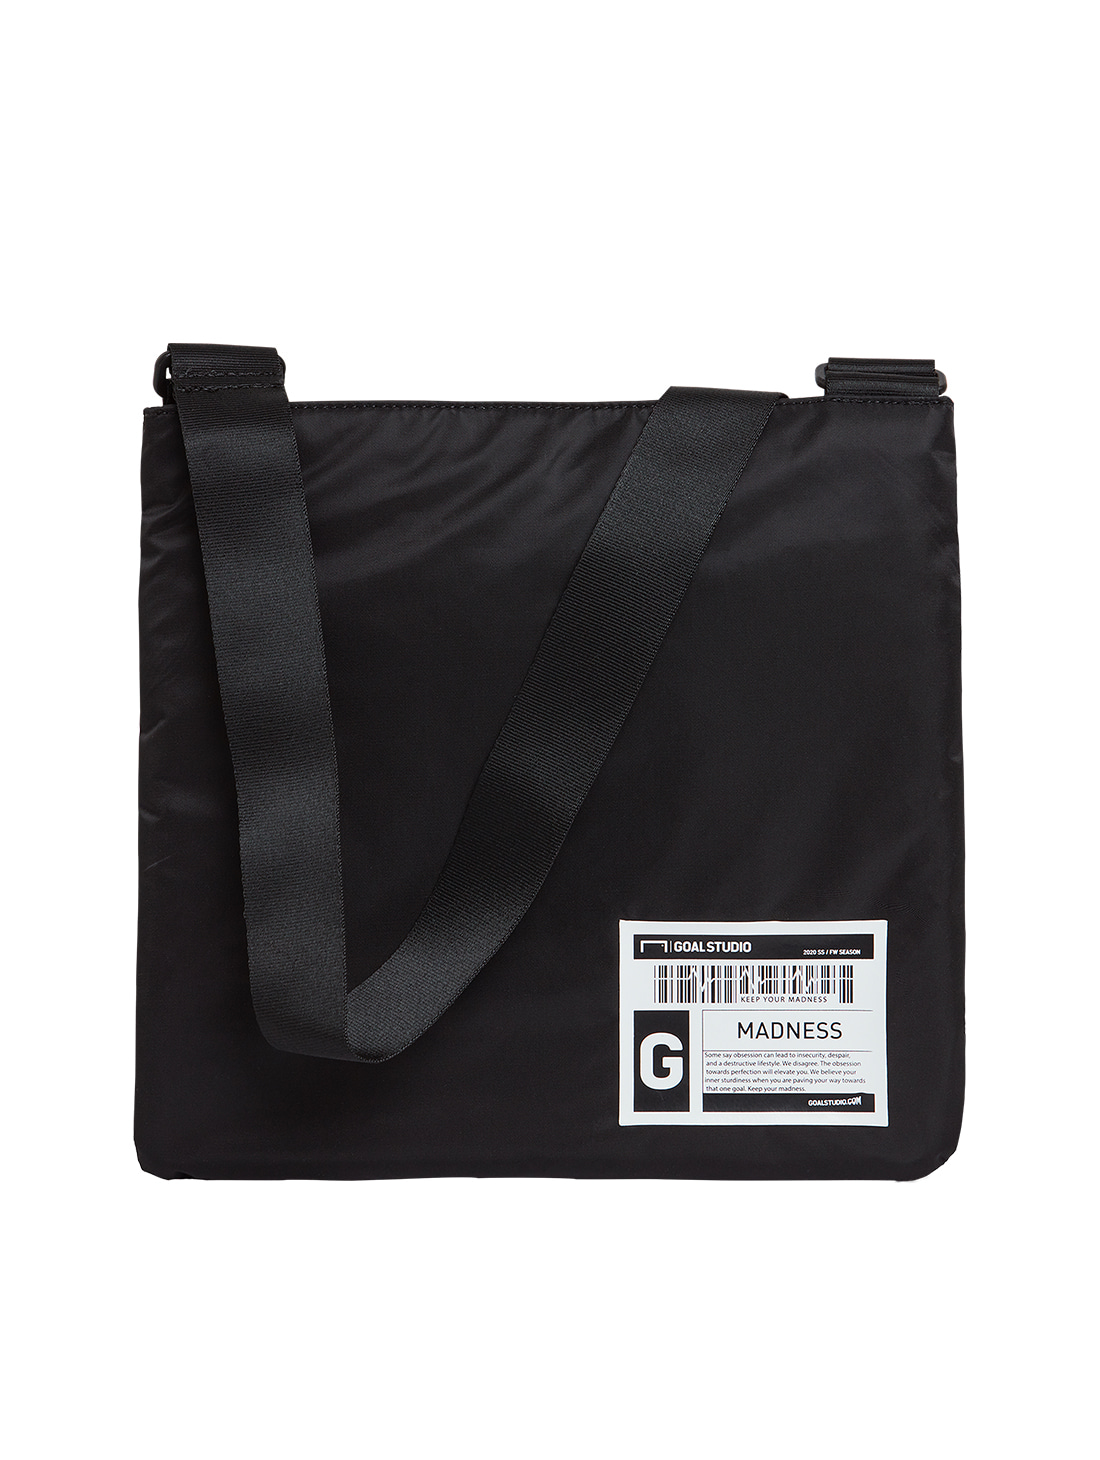 GOALSTUDIO LOGO WAPPEN SACOCHE BAG - BLACK